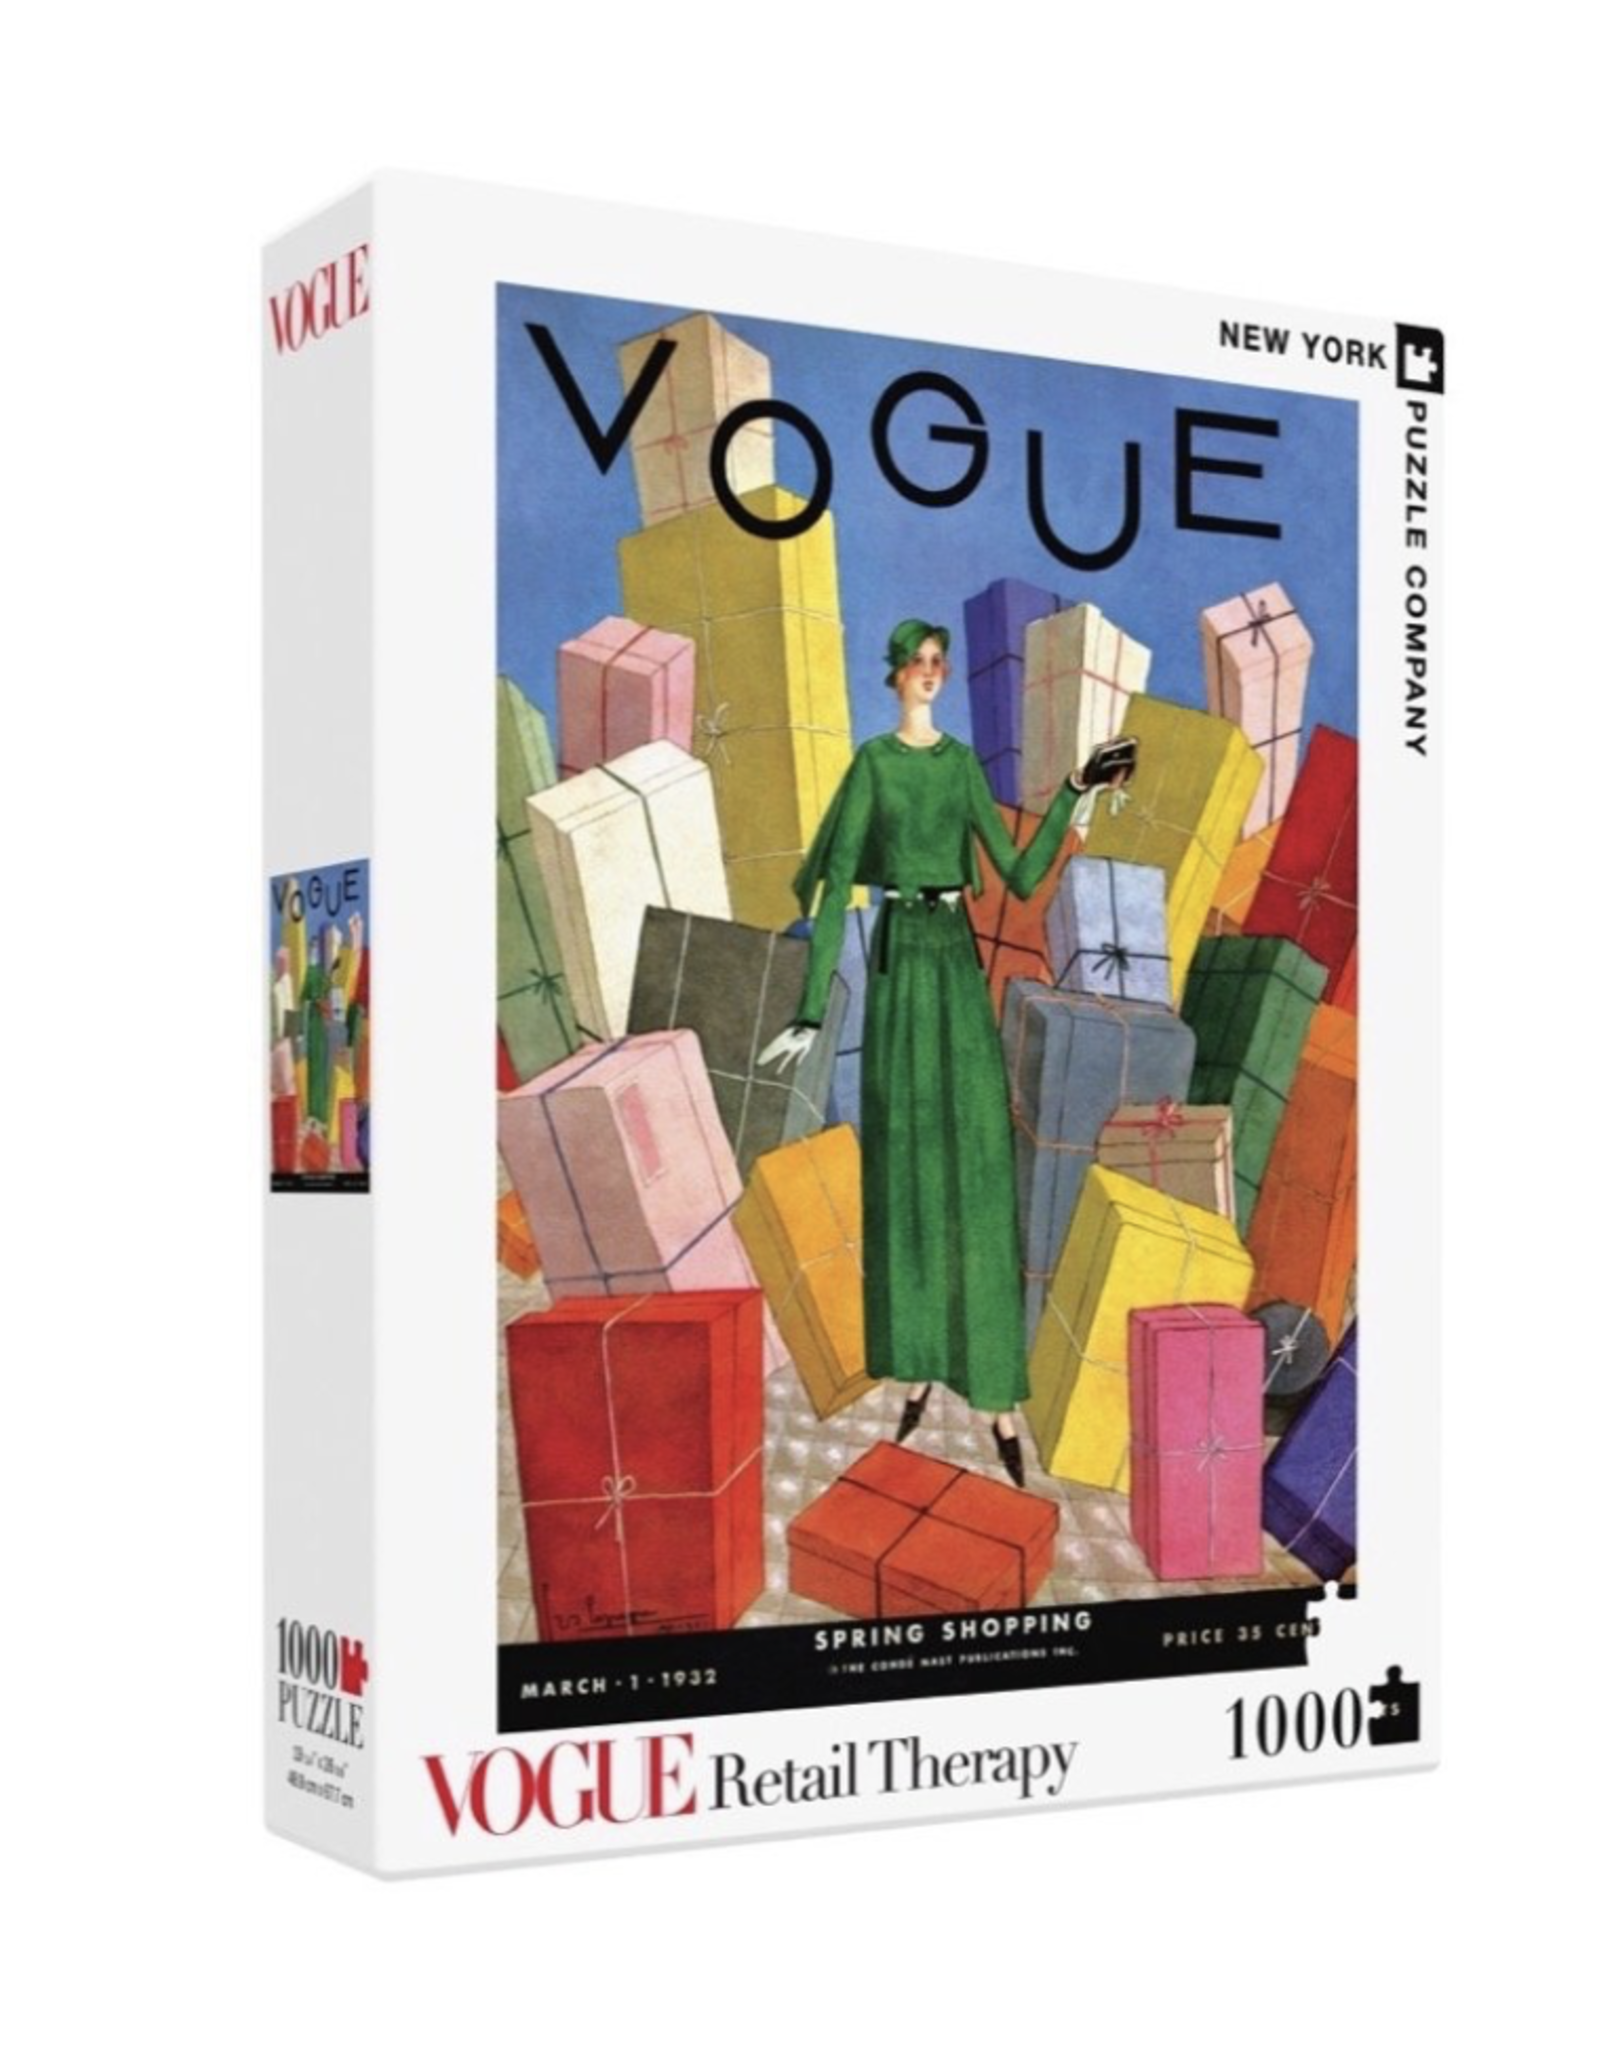 Puzzle Retail Therapy - 1000 Piece